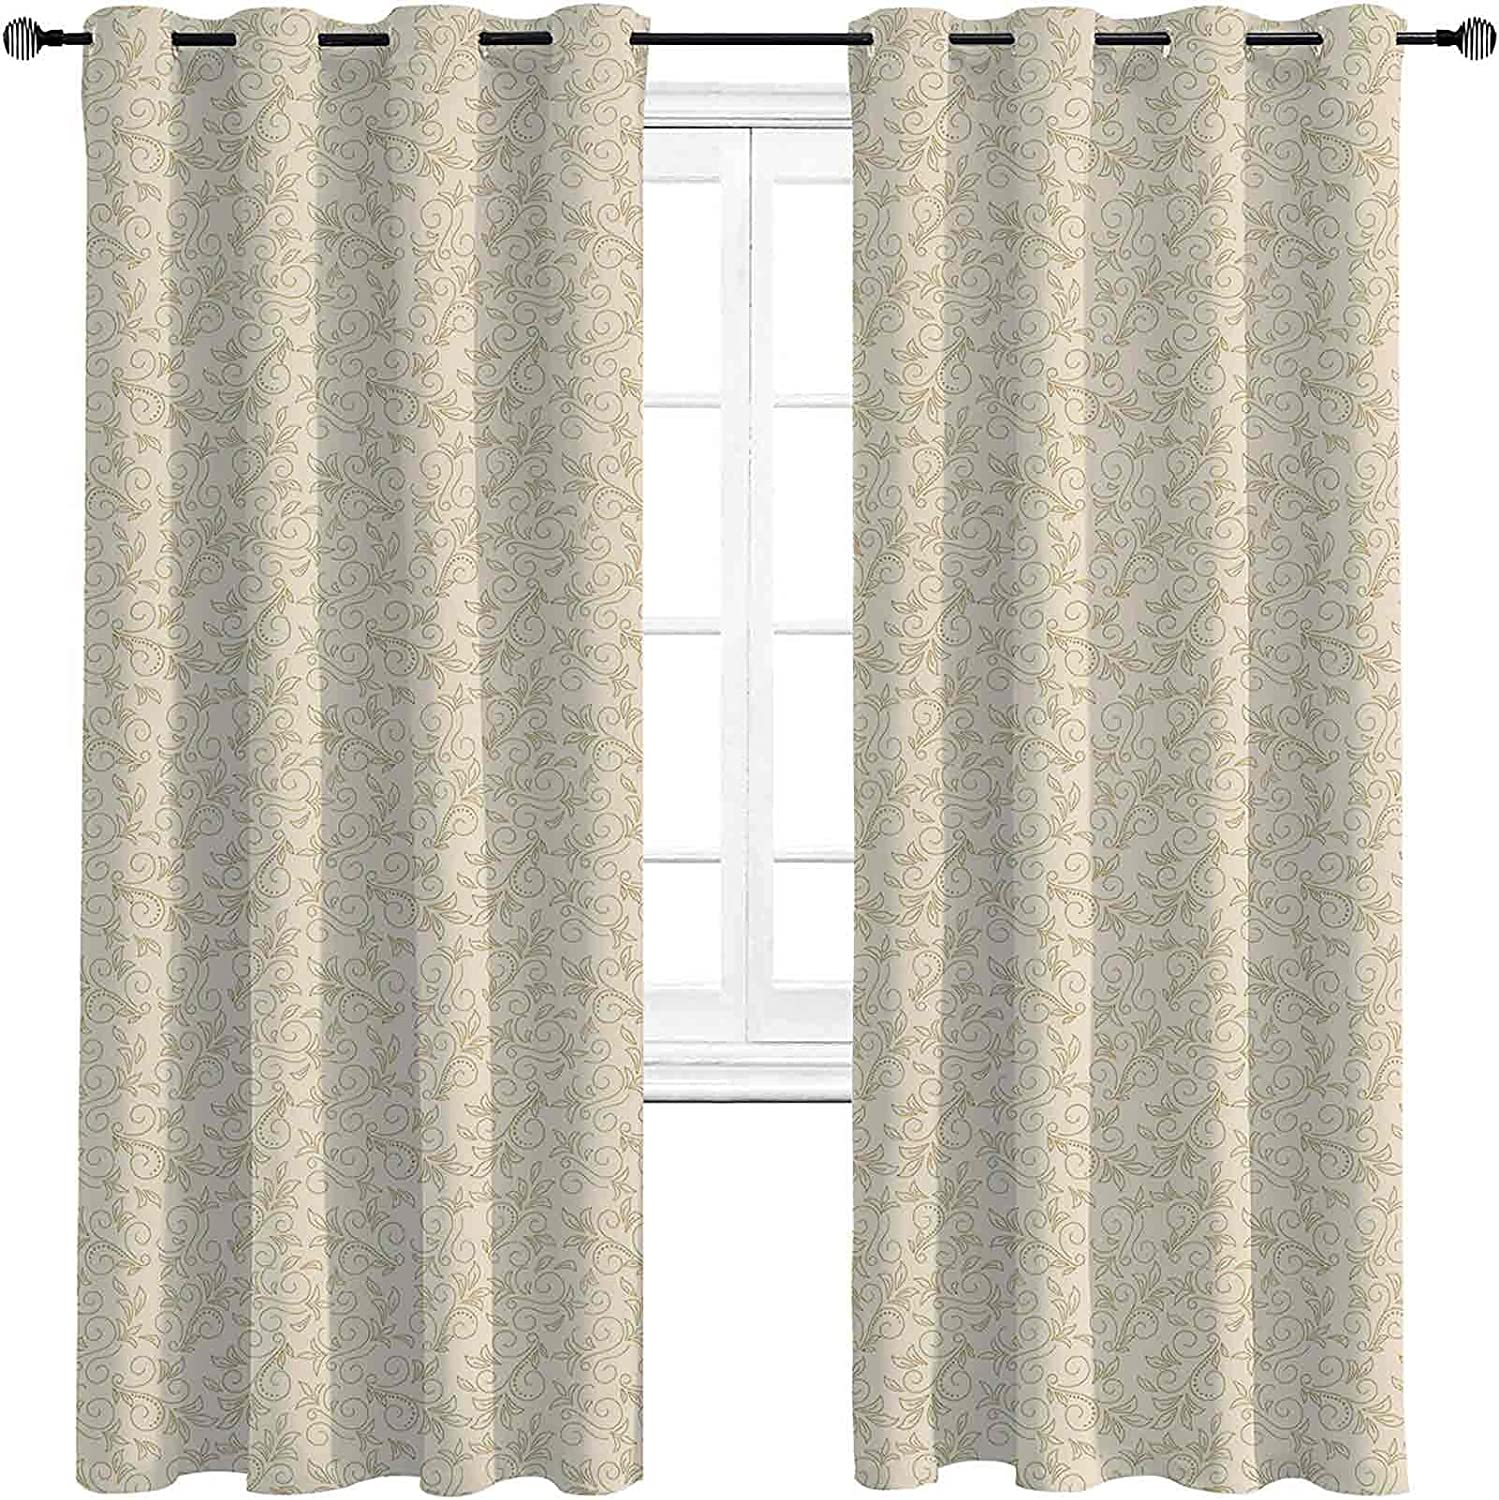 Beige Mesa Mall Room Be super welcome Darkened Insulation Abstract Grommet Floral Curtain